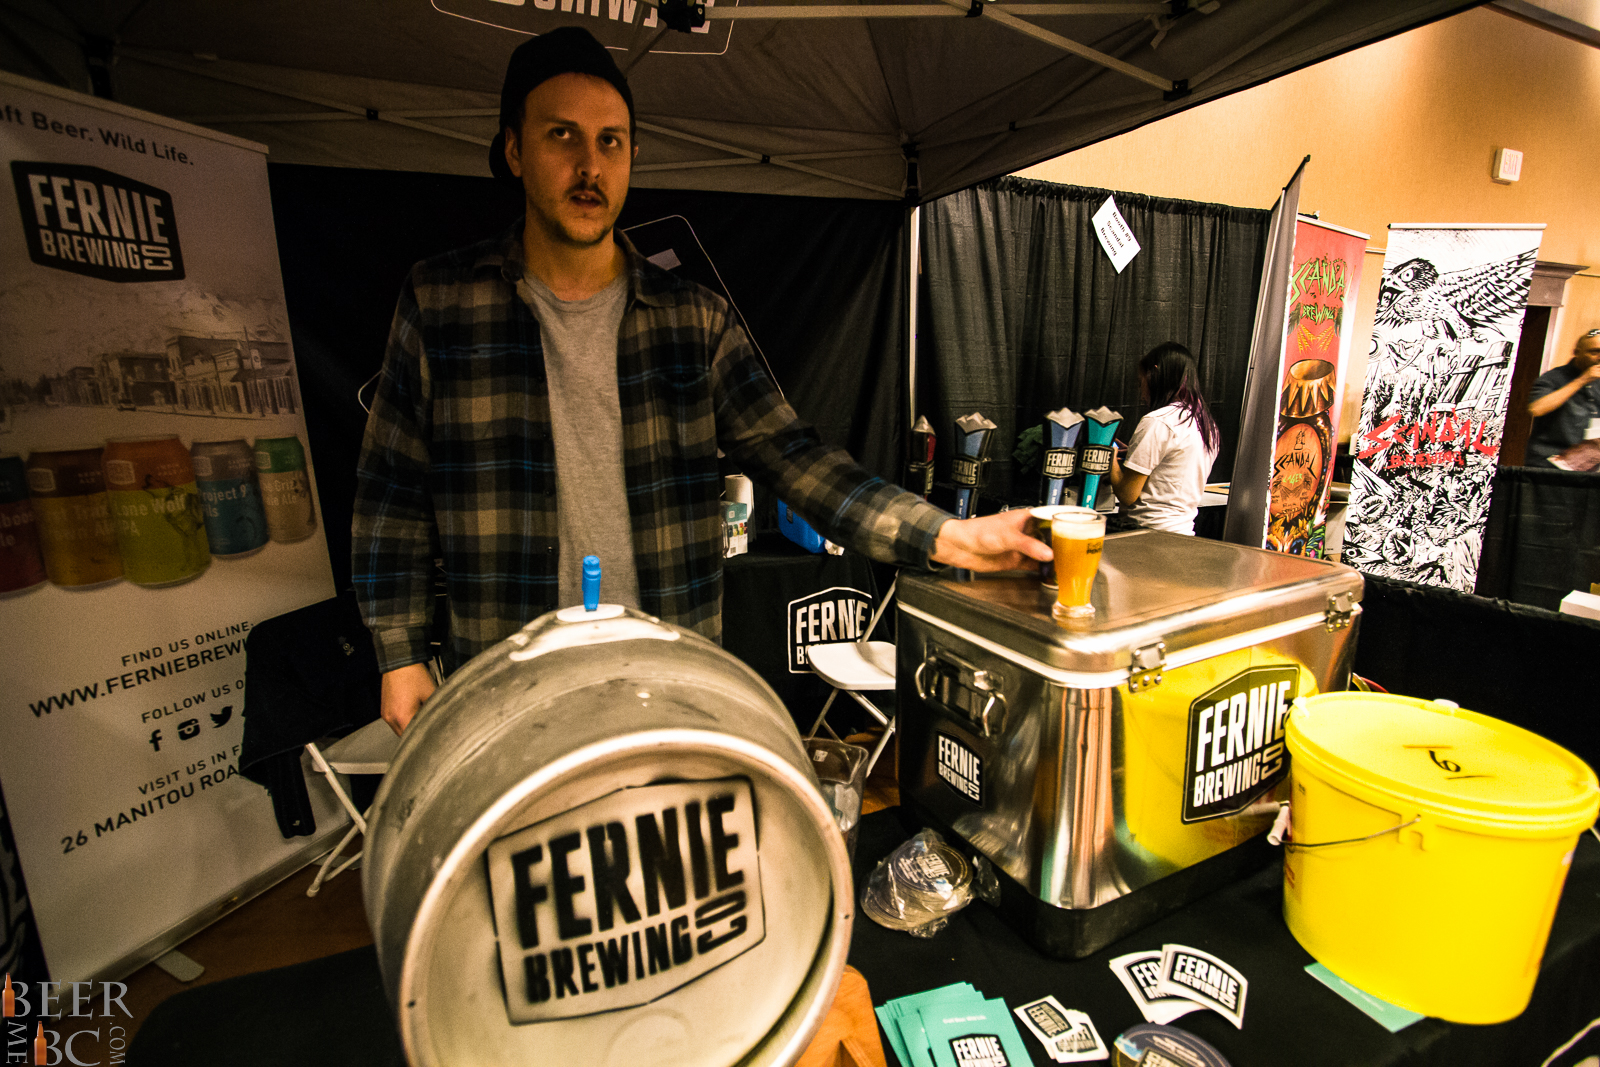 Okanagan Fest Of Ale - Fernie Brewing